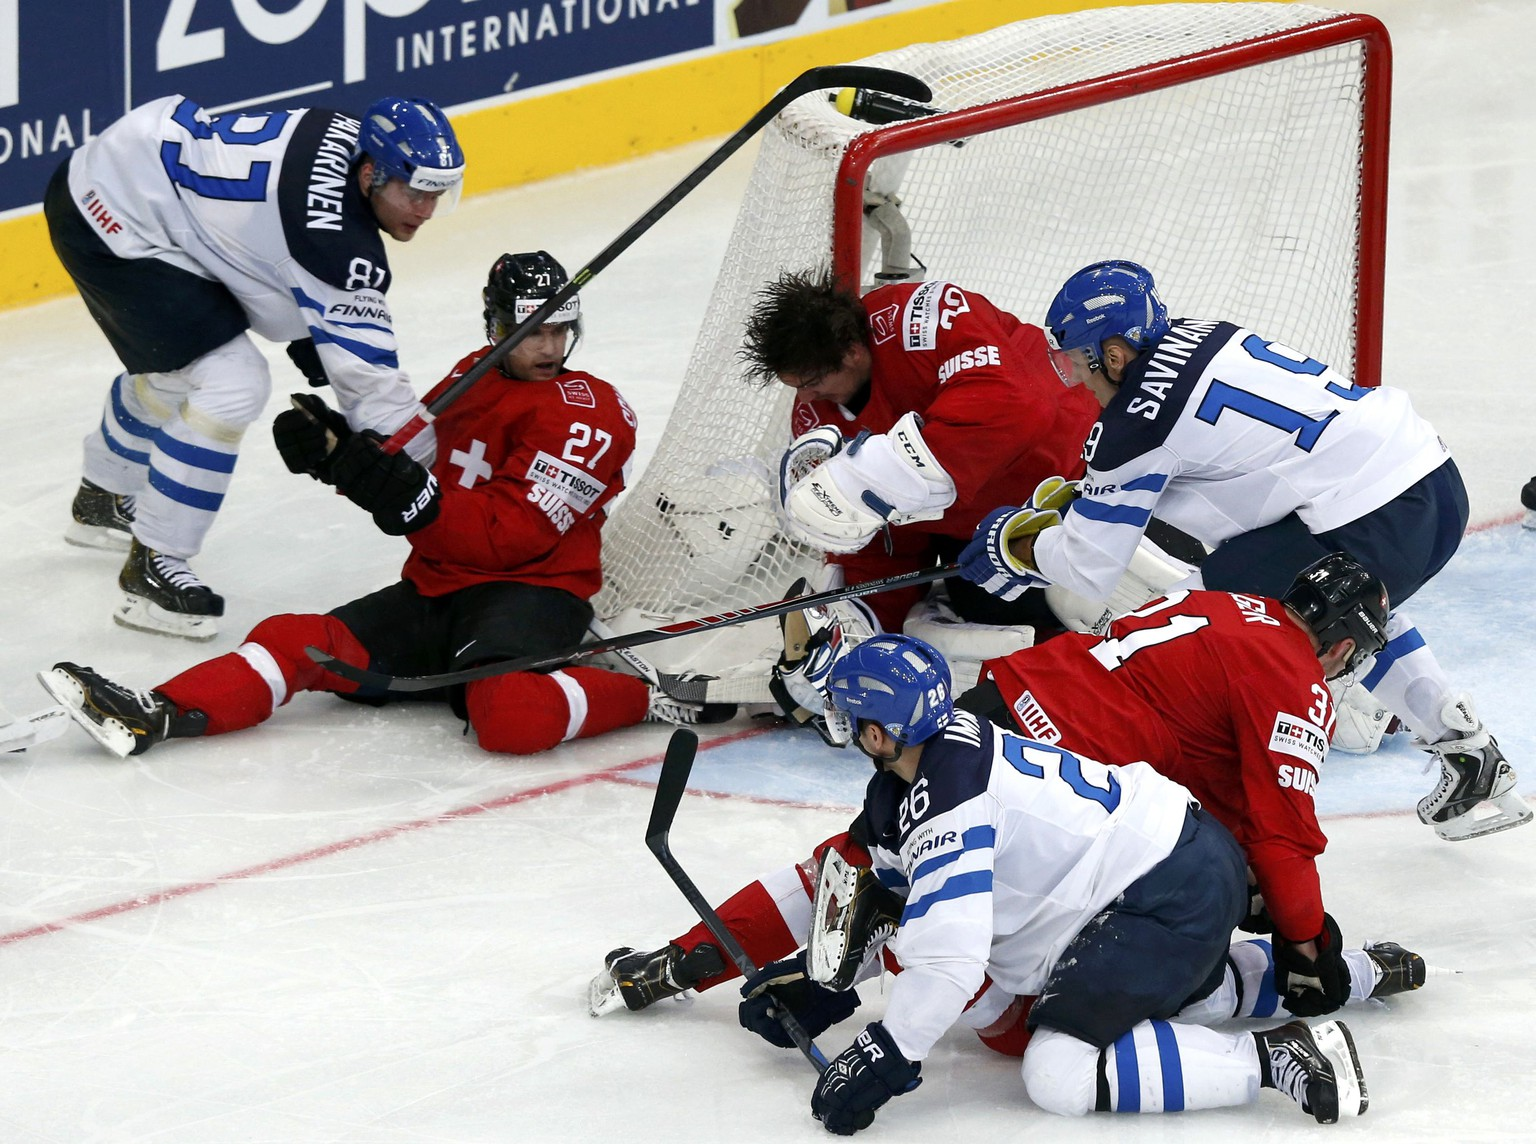 Switzerland's goalie Reto Berra drops his helmet as he defends during the third period of their men's ice hockey World Championship Group B game against Finland at Minsk Arena in Minsk May 16, 2014.  REUTERS/Alexander Demianchuk (BELARUS  - Tags: SPORT ICE HOCKEY)